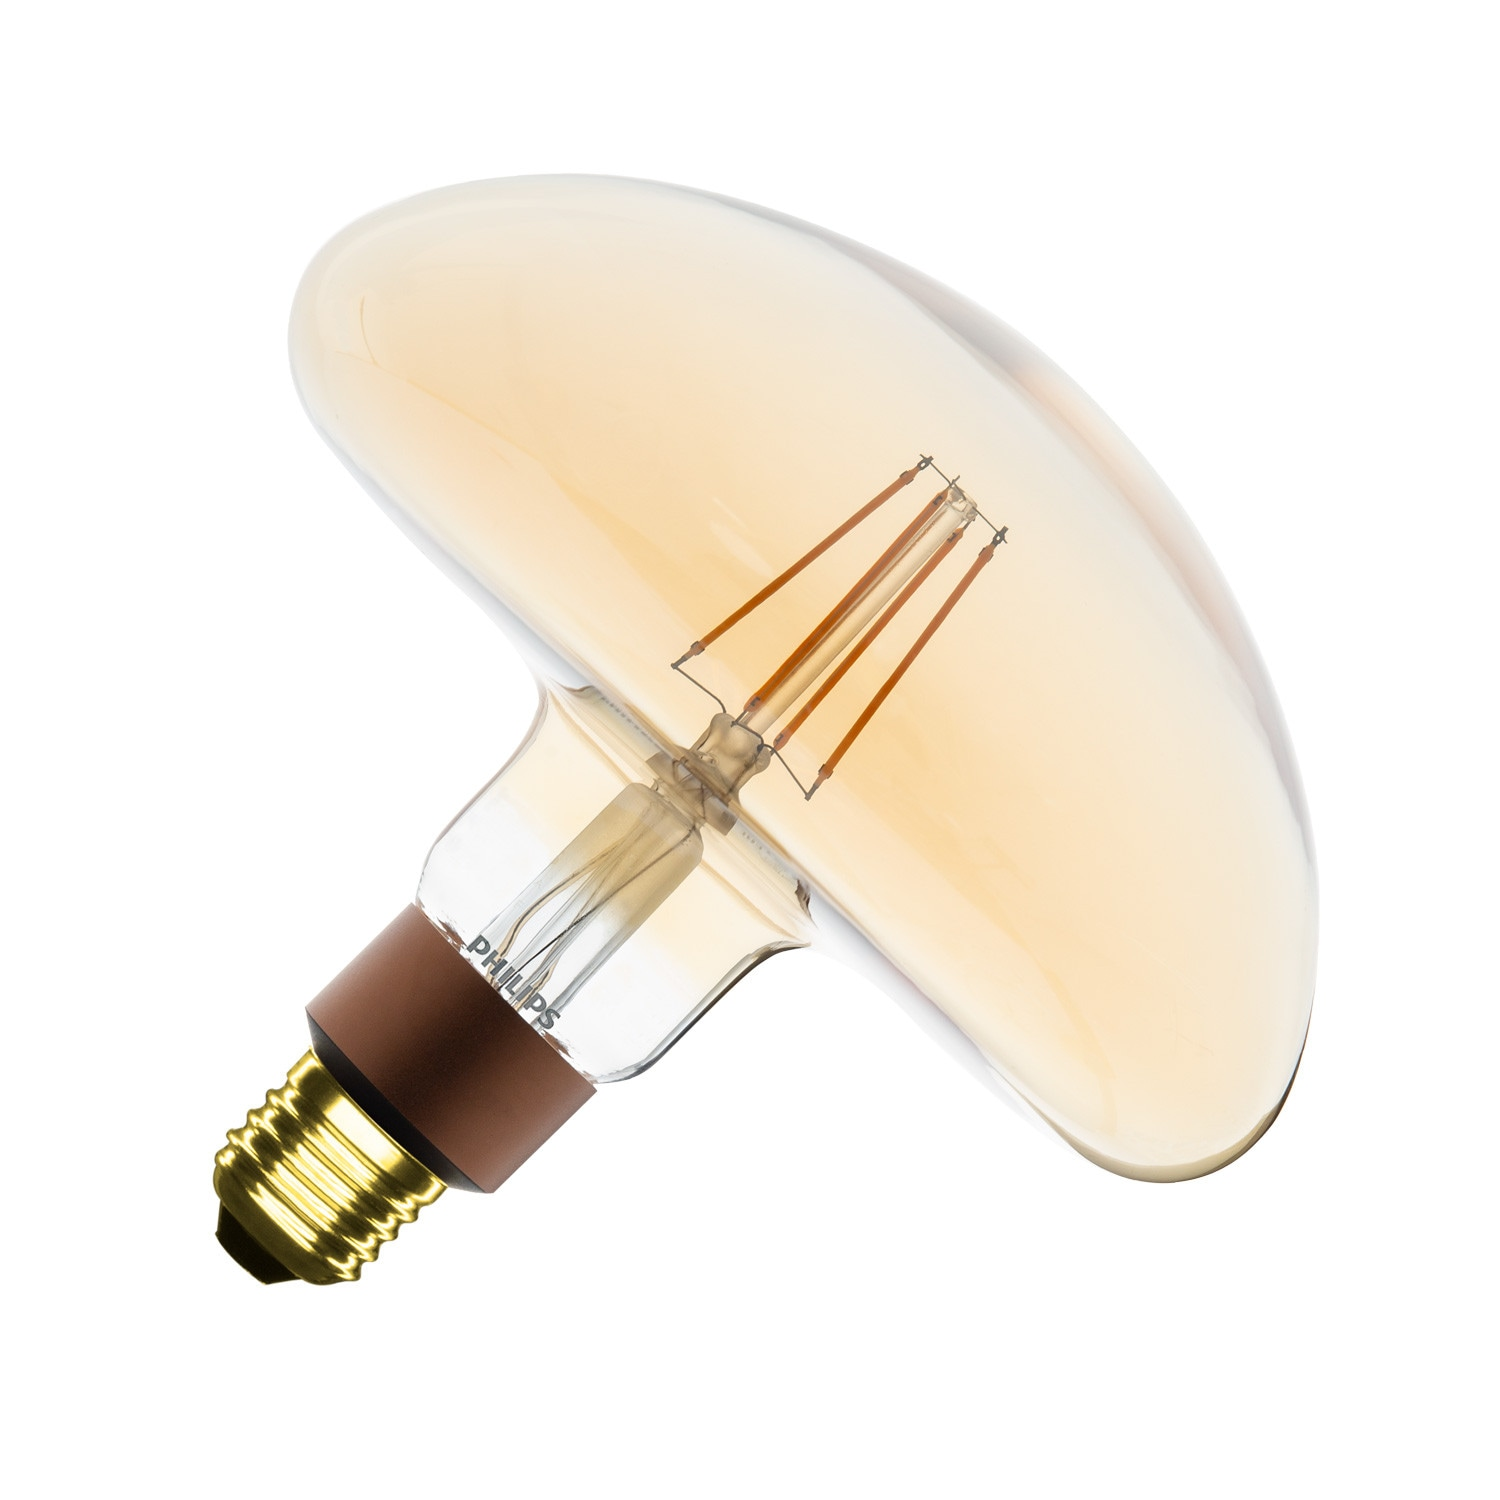 Led Dimmable 5w E27 Philips Filament Ampoule Gold Classic G202 Mushroom Ybf6I7gymv